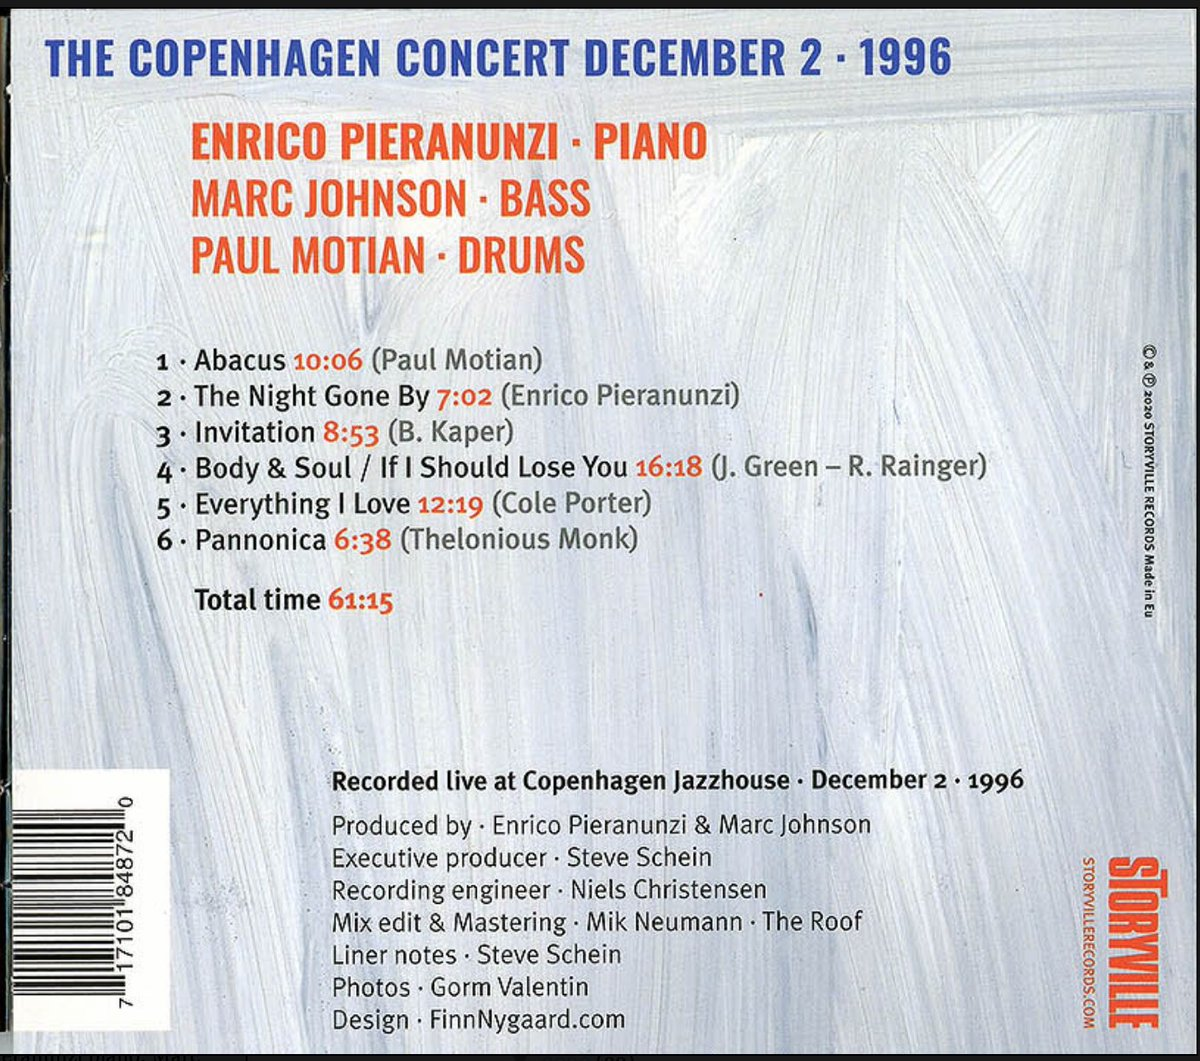 """Ted Gioia on Twitter: """"Today's new music recommendation: The Copenhagen  Concert, a new album released on Friday, featuring pianist Enrico Pieranunzi  with Paul Motian and Marc Johnson in a 1996 live recording."""